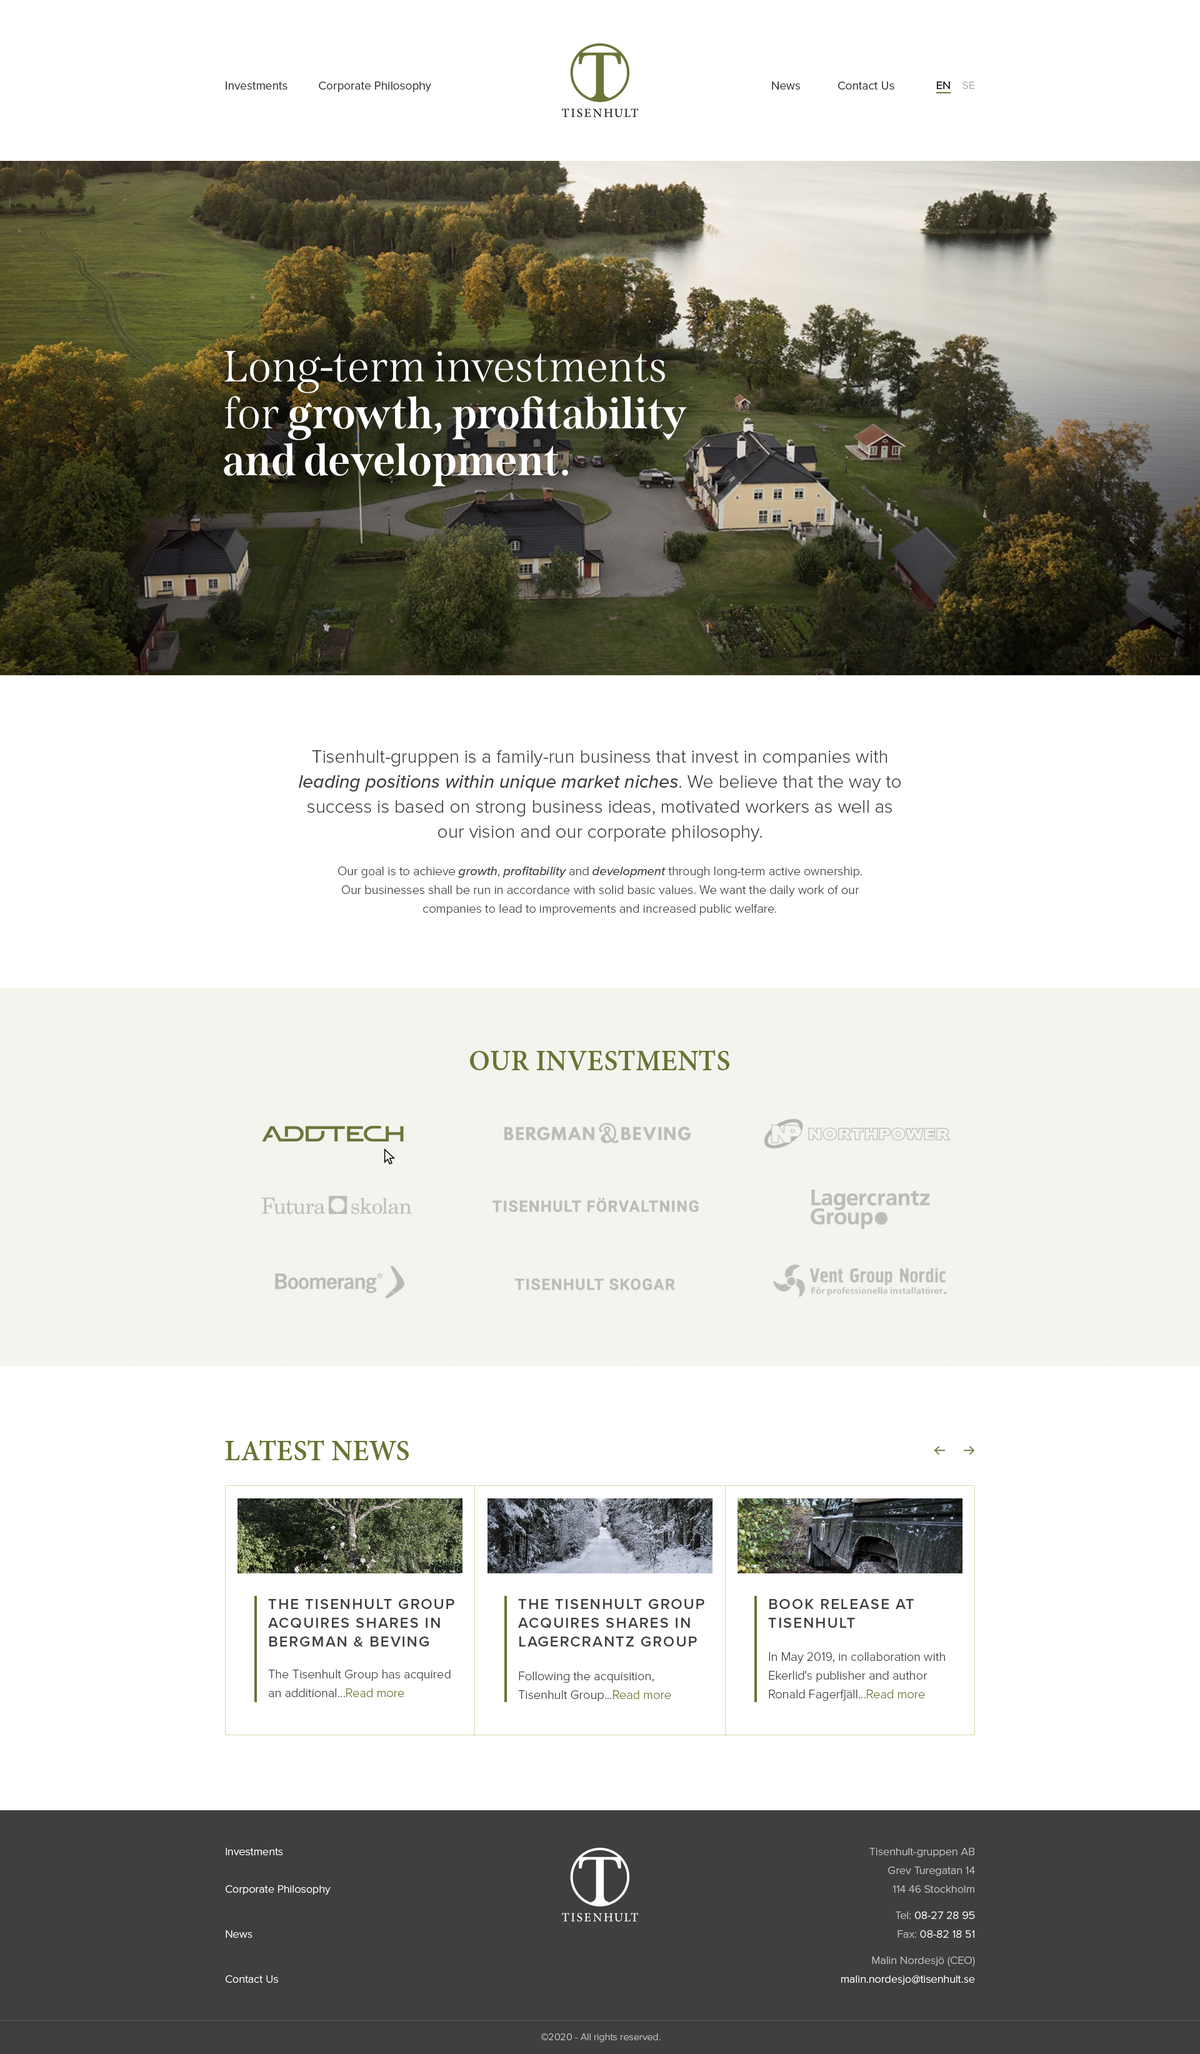 We need a new web design for our investment firm